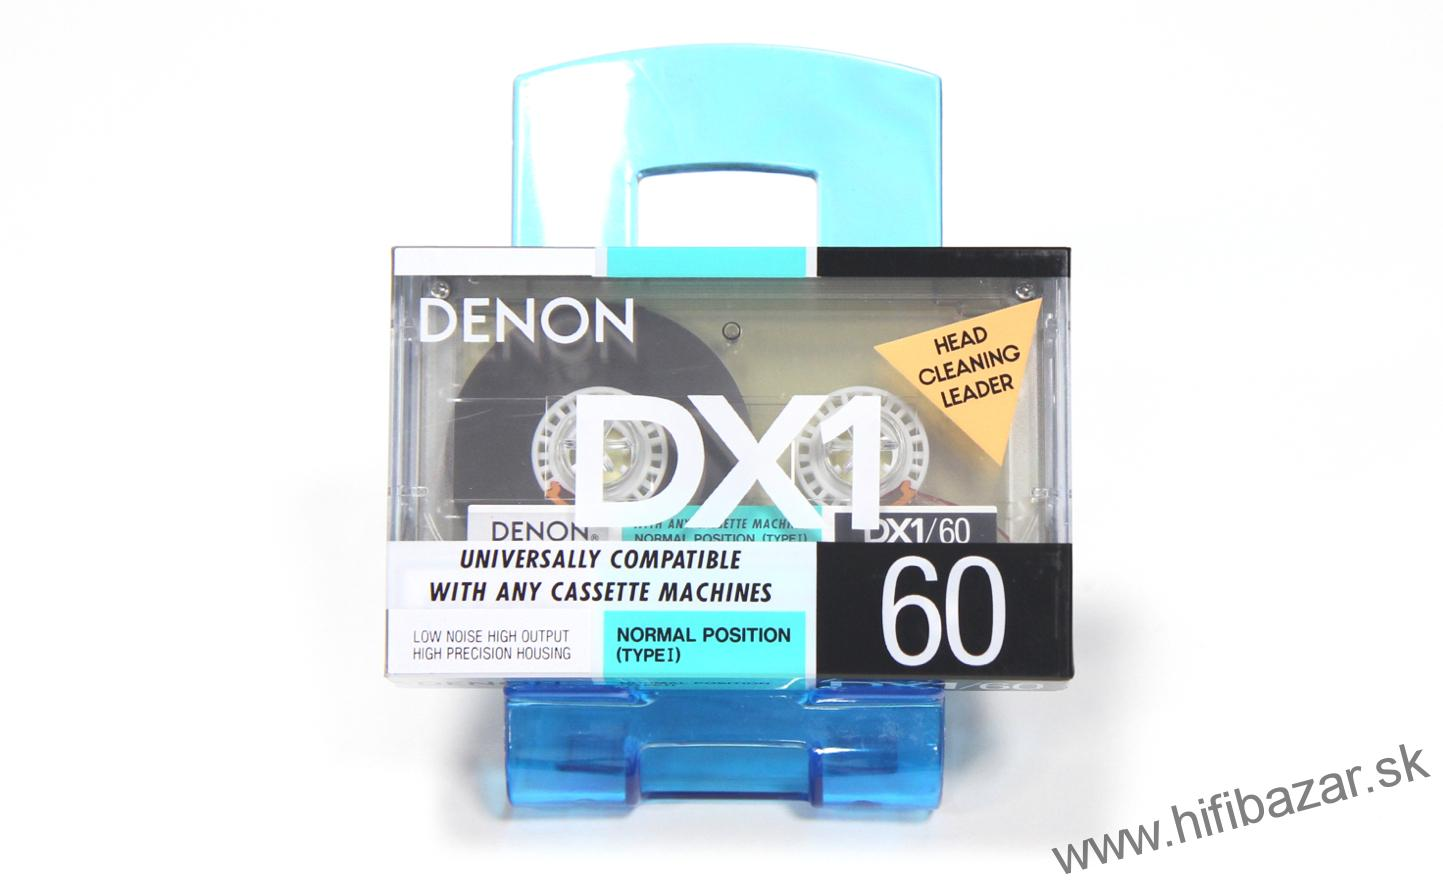 DENON DX1-60 Position Normal